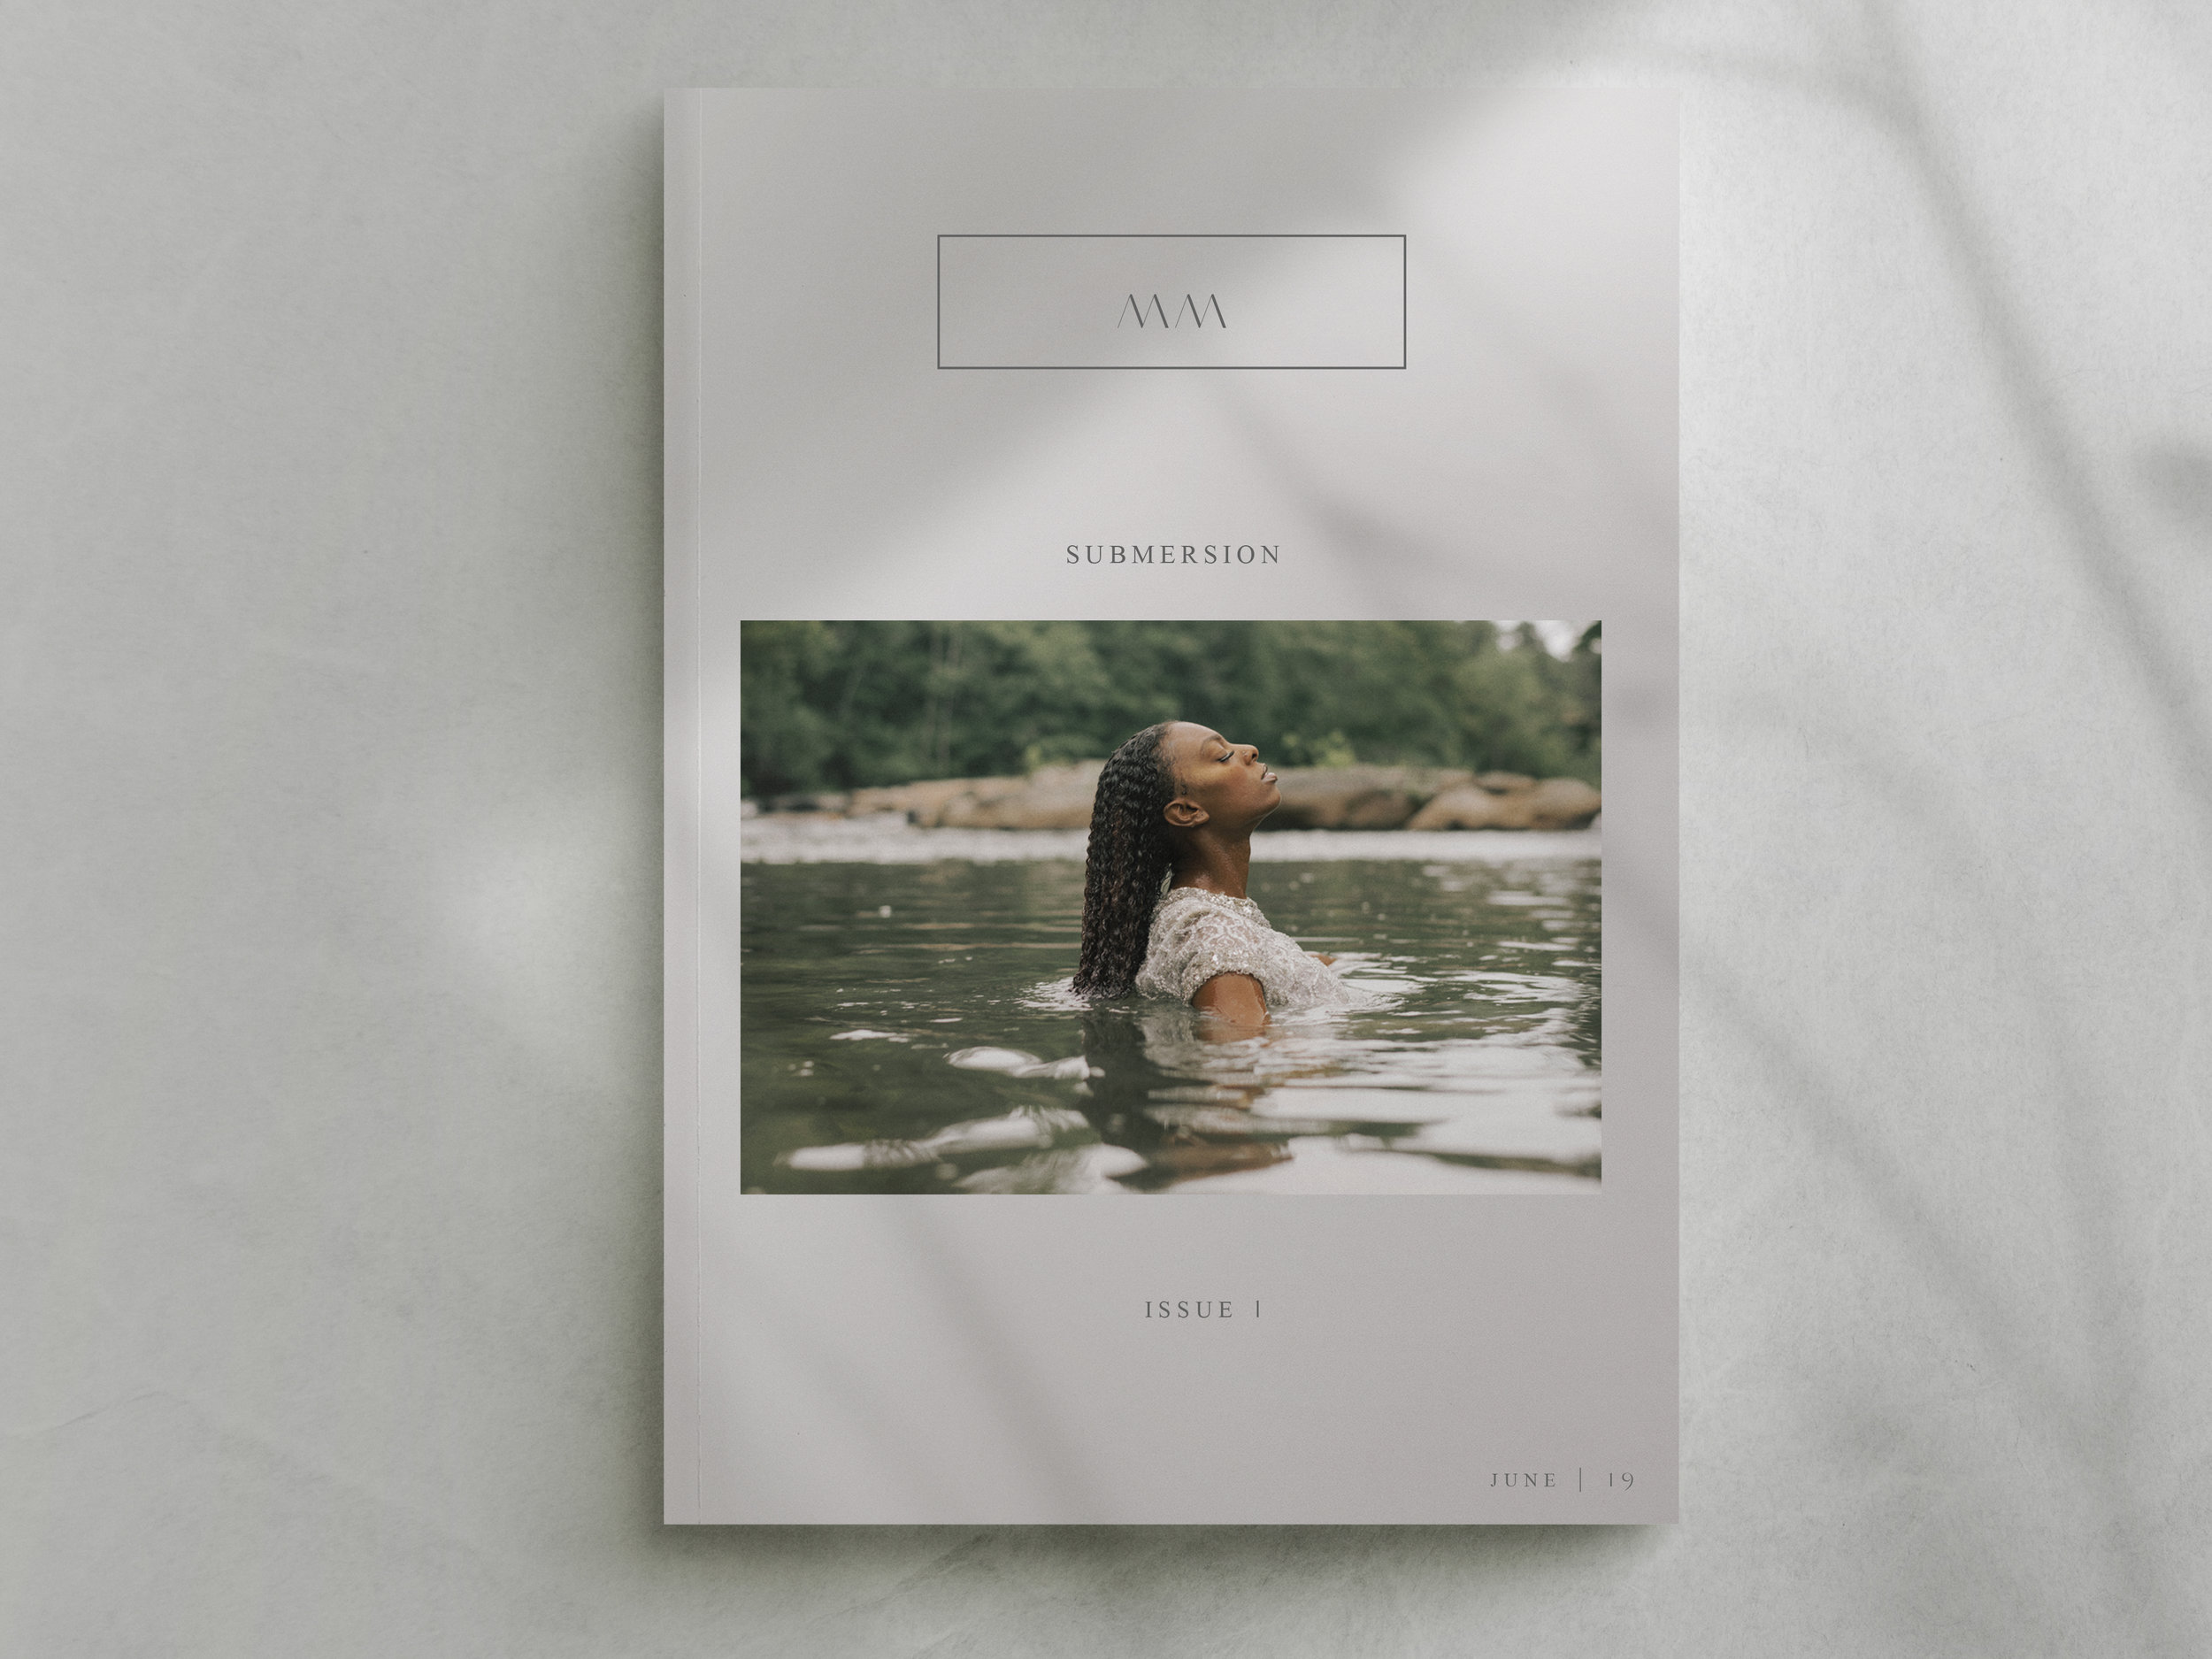 Submersion Cover Issue 1.jpg